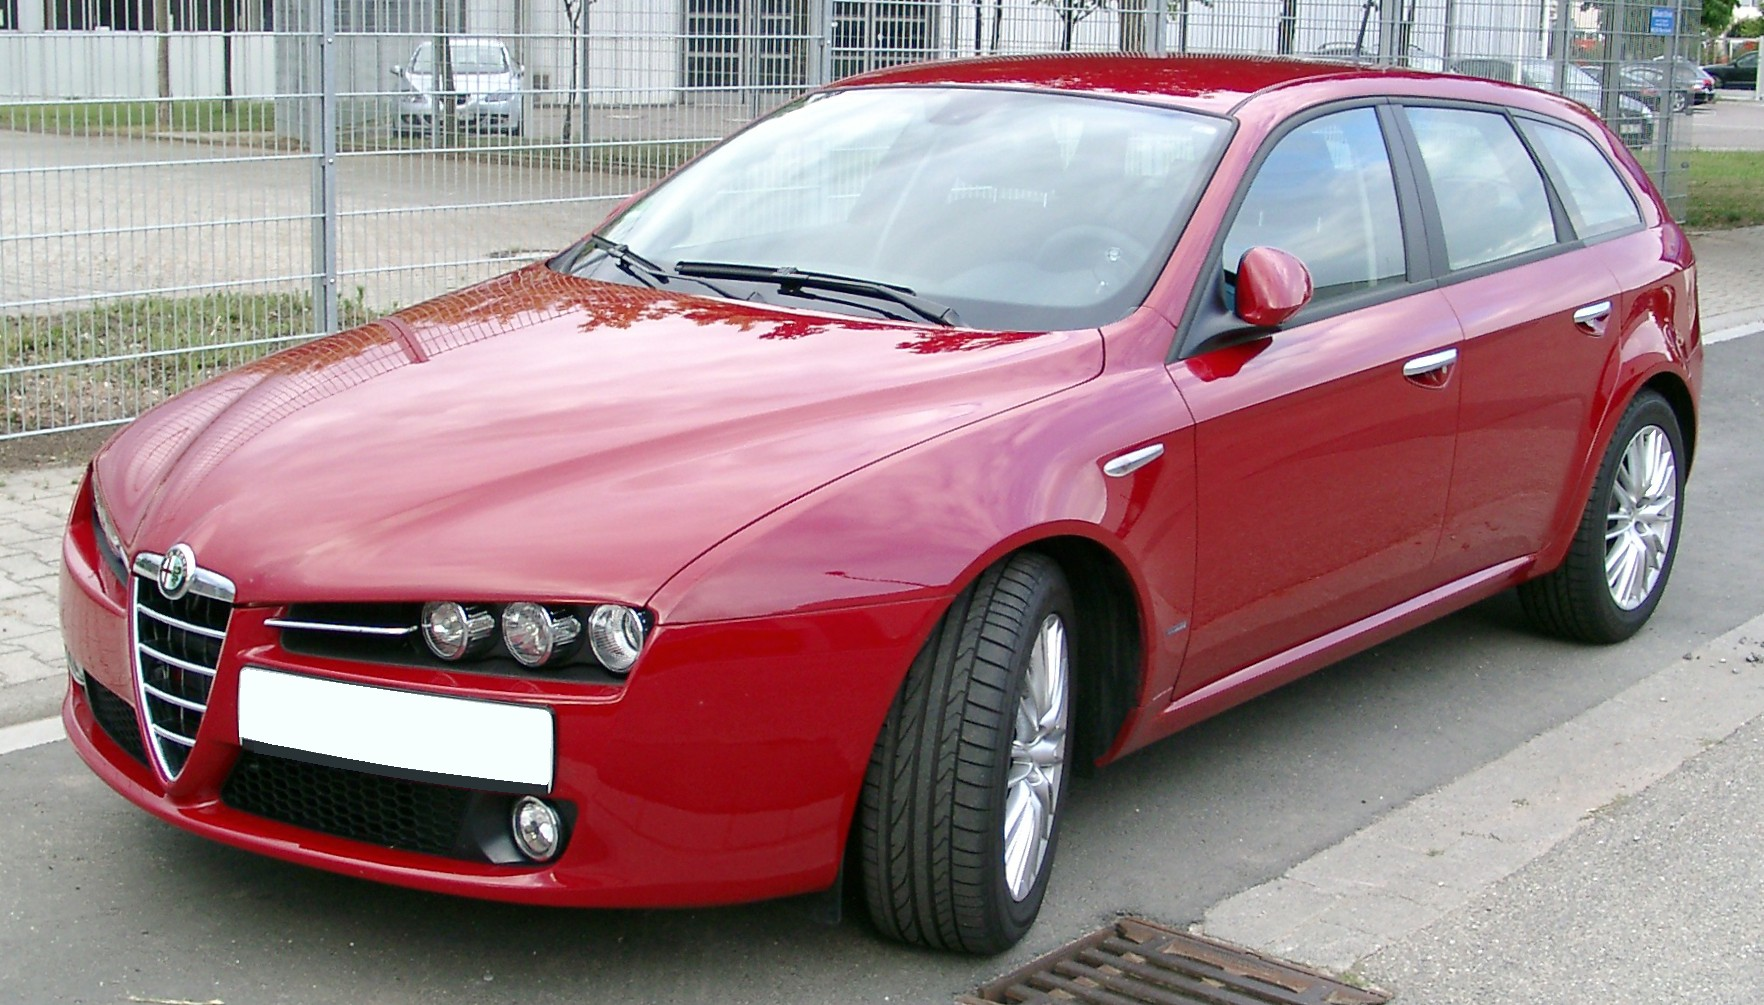 file alfa romeo 159 sw front wikipedia. Black Bedroom Furniture Sets. Home Design Ideas